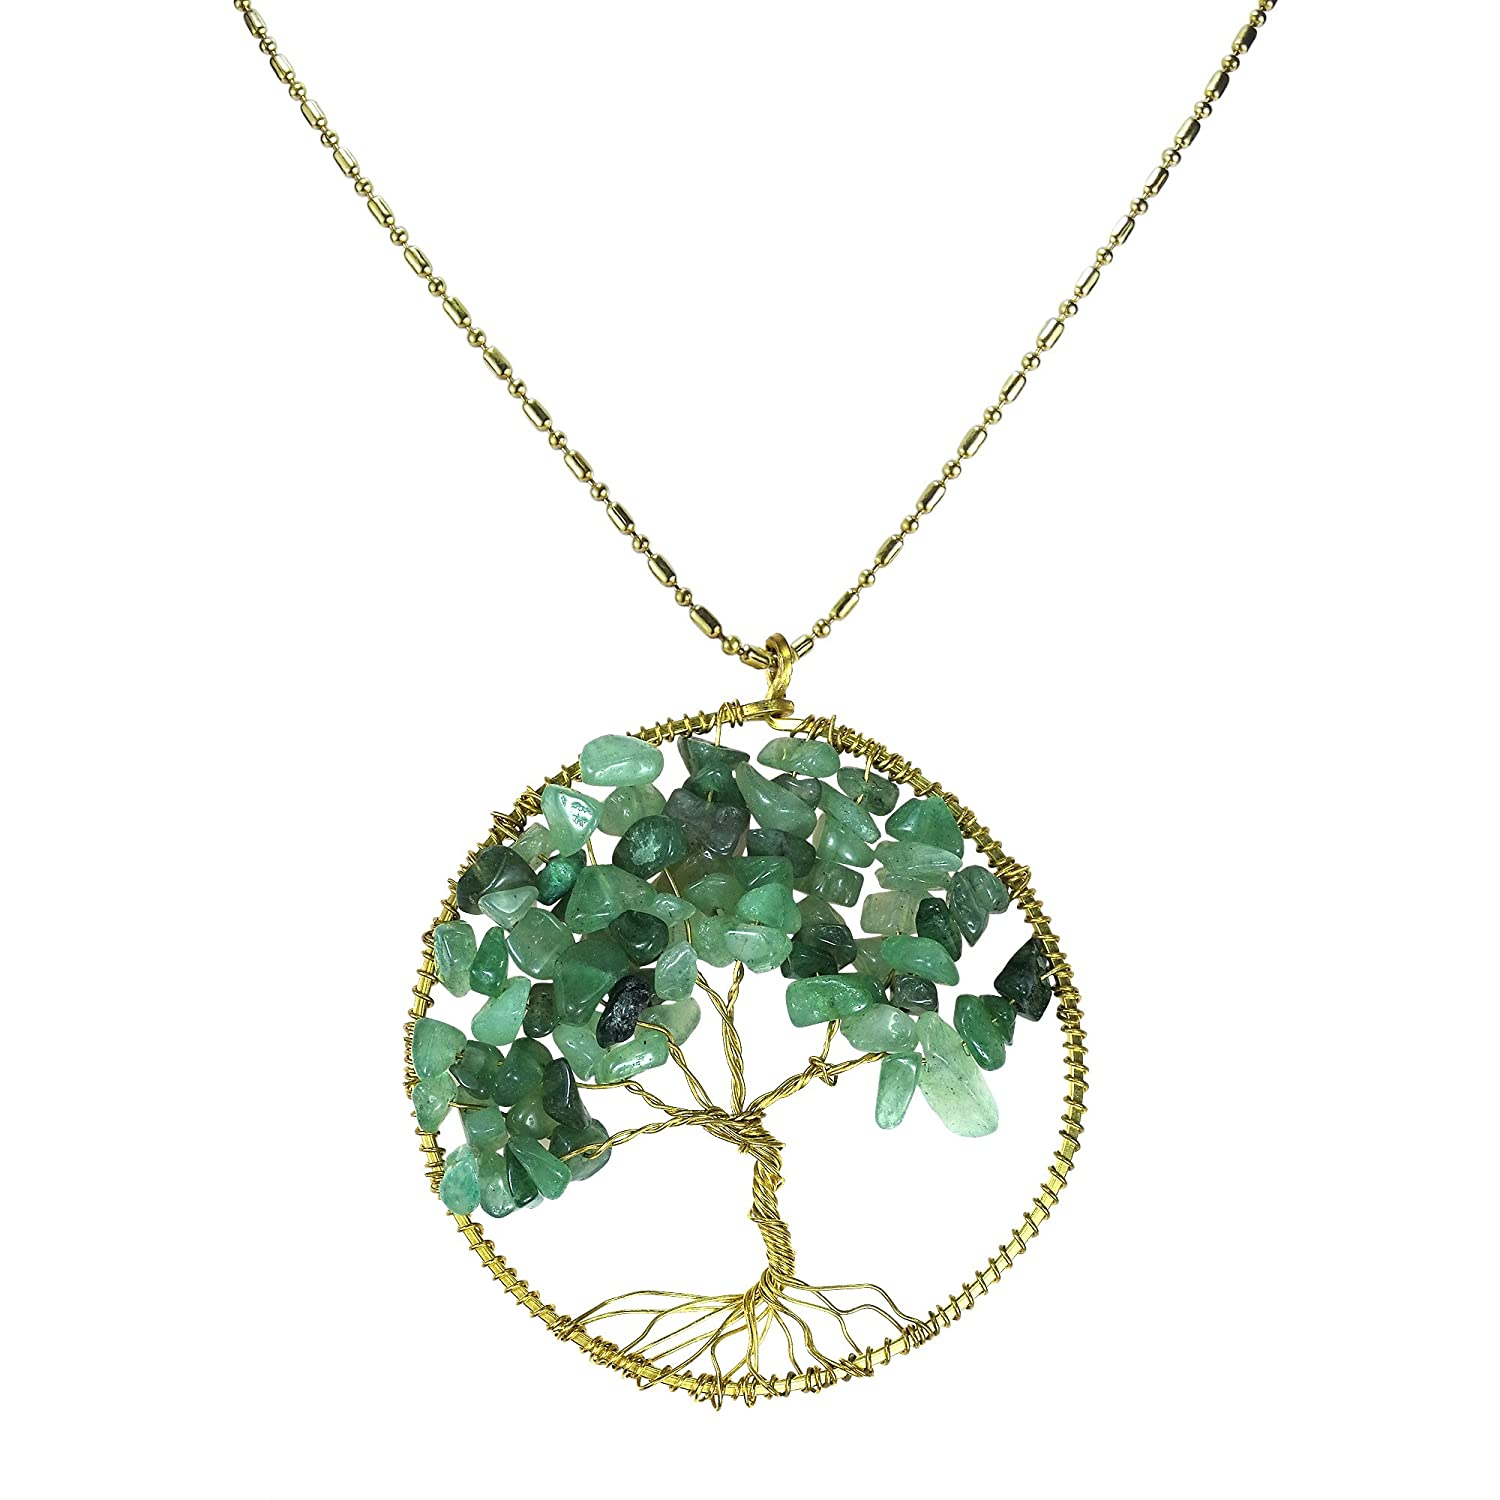 south price stone green plated necklace with gm jewels gold set designer india